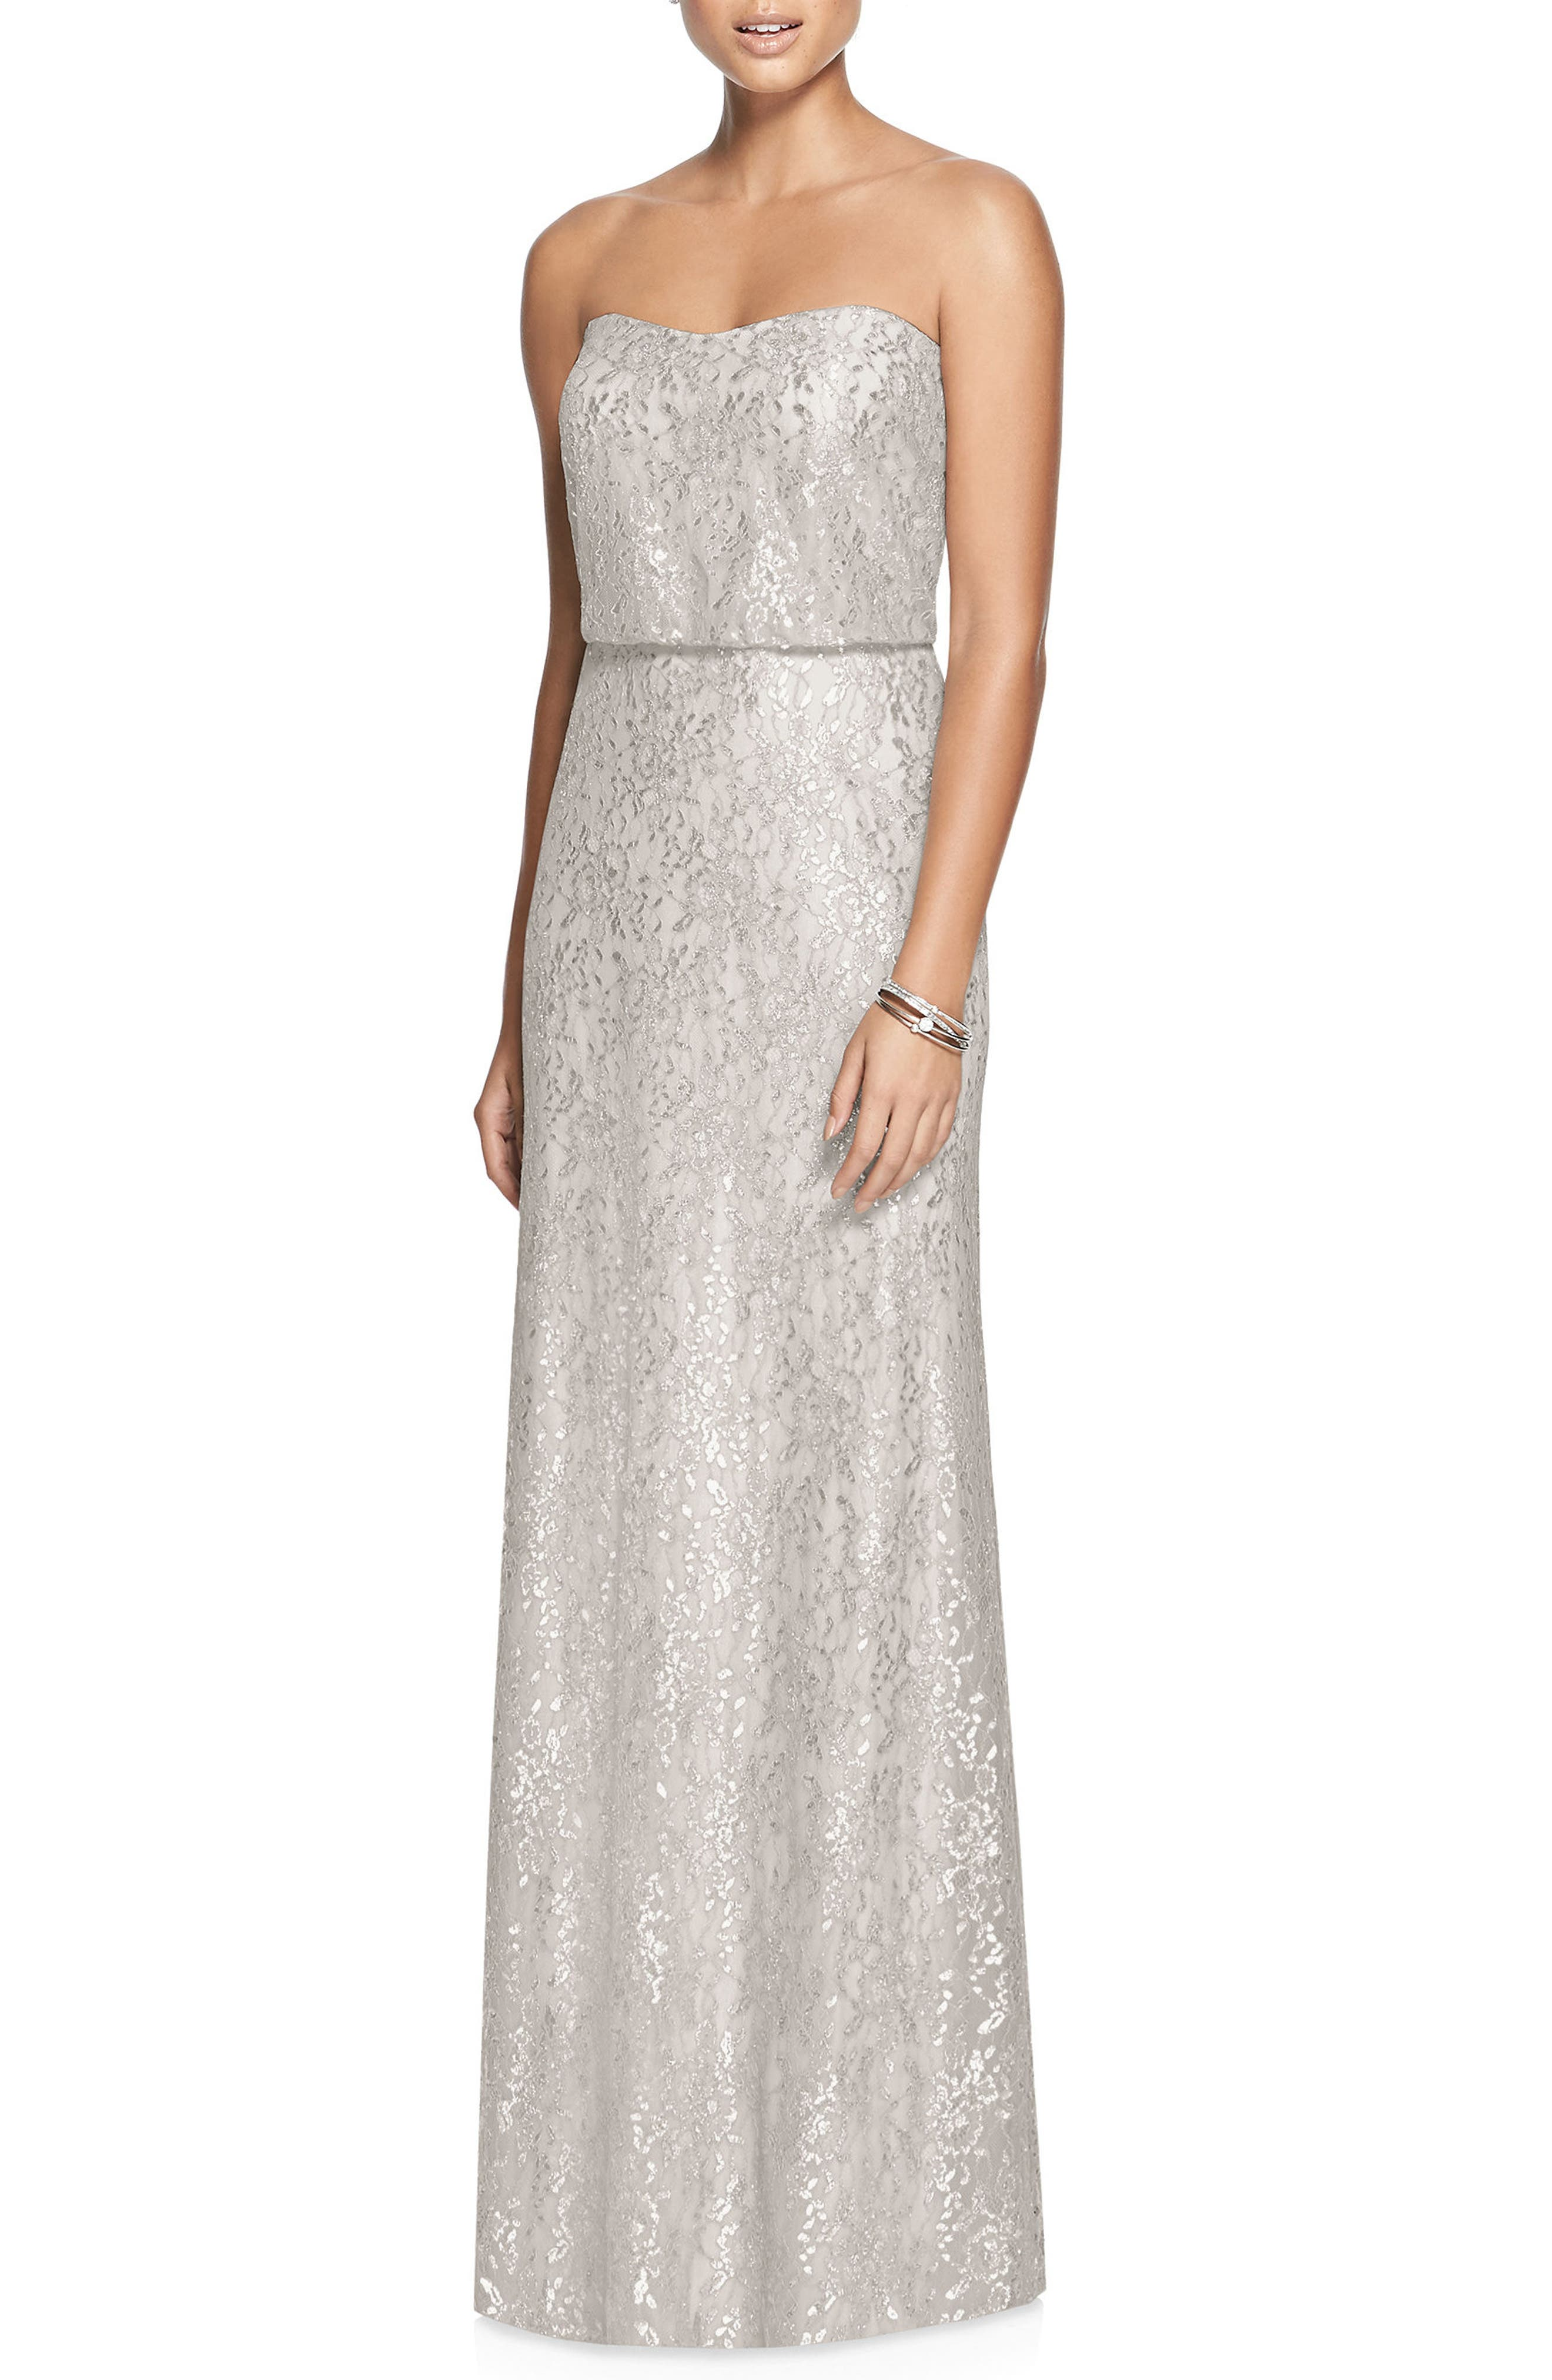 Main Image - After Six Metallic Lace Strapless Blouson Gown